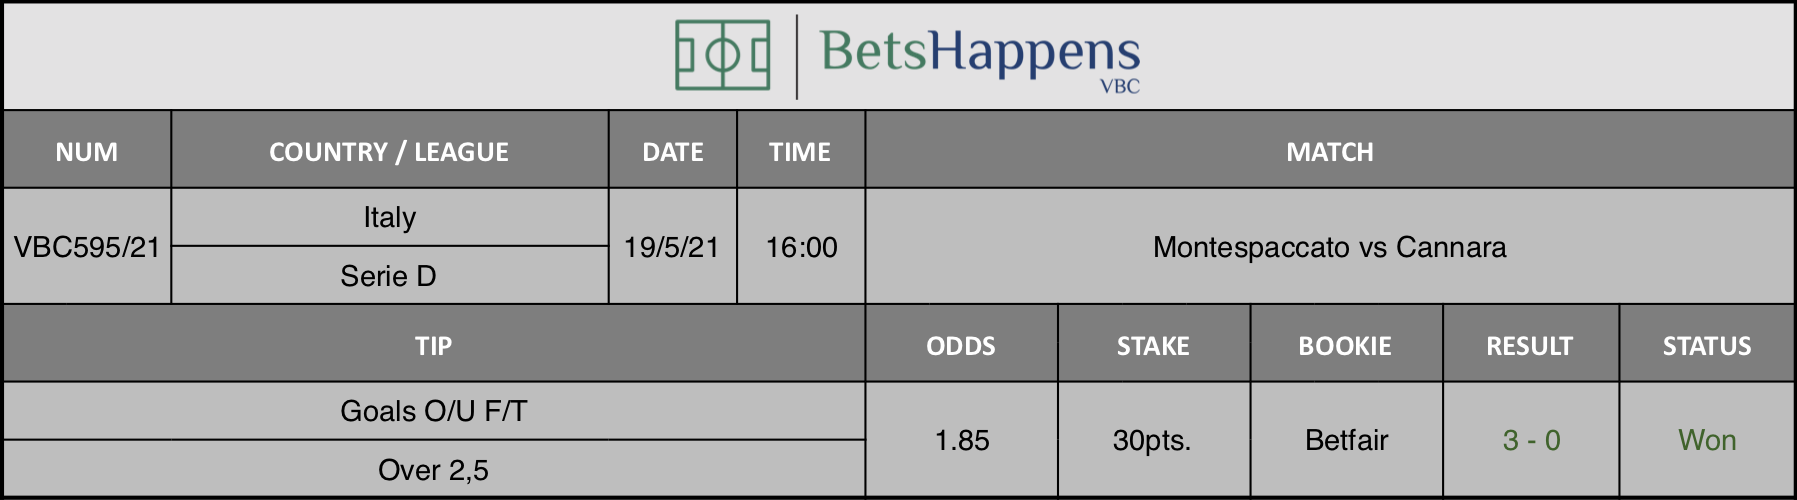 Results of our tip for the Montespaccato vs Cannara match where Goals O/U F/T Over 2,5 is recommended.